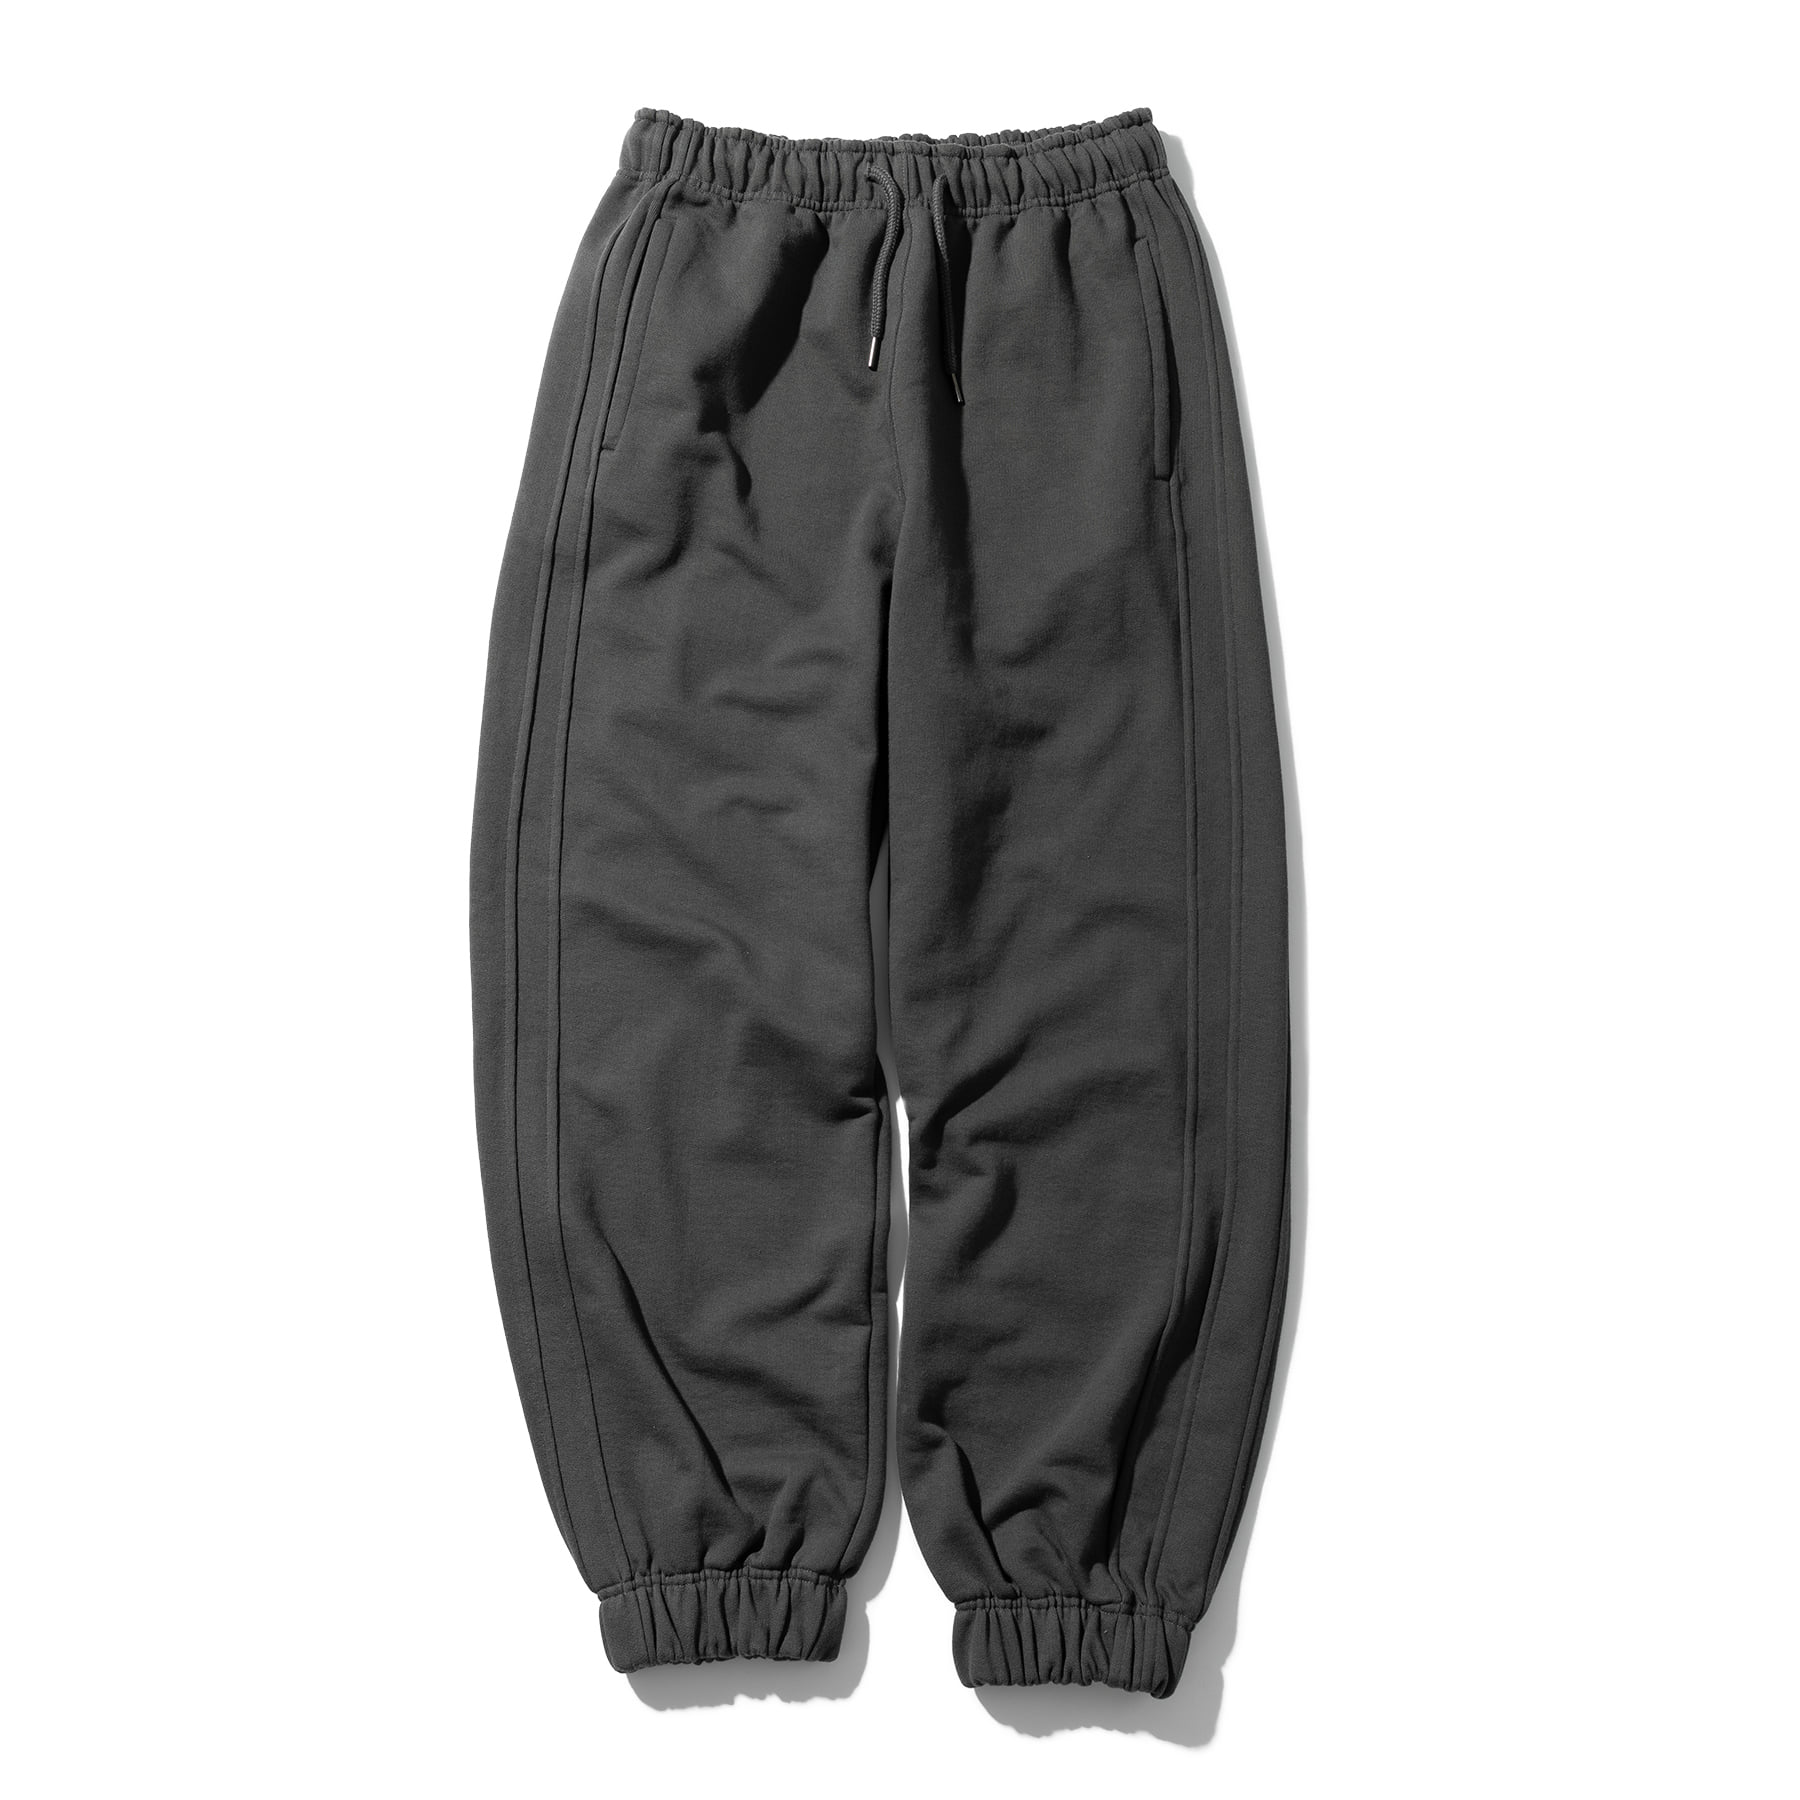 (10%)DOUBLE PIERCED TRAINNING PANTS MSOTP007-DG